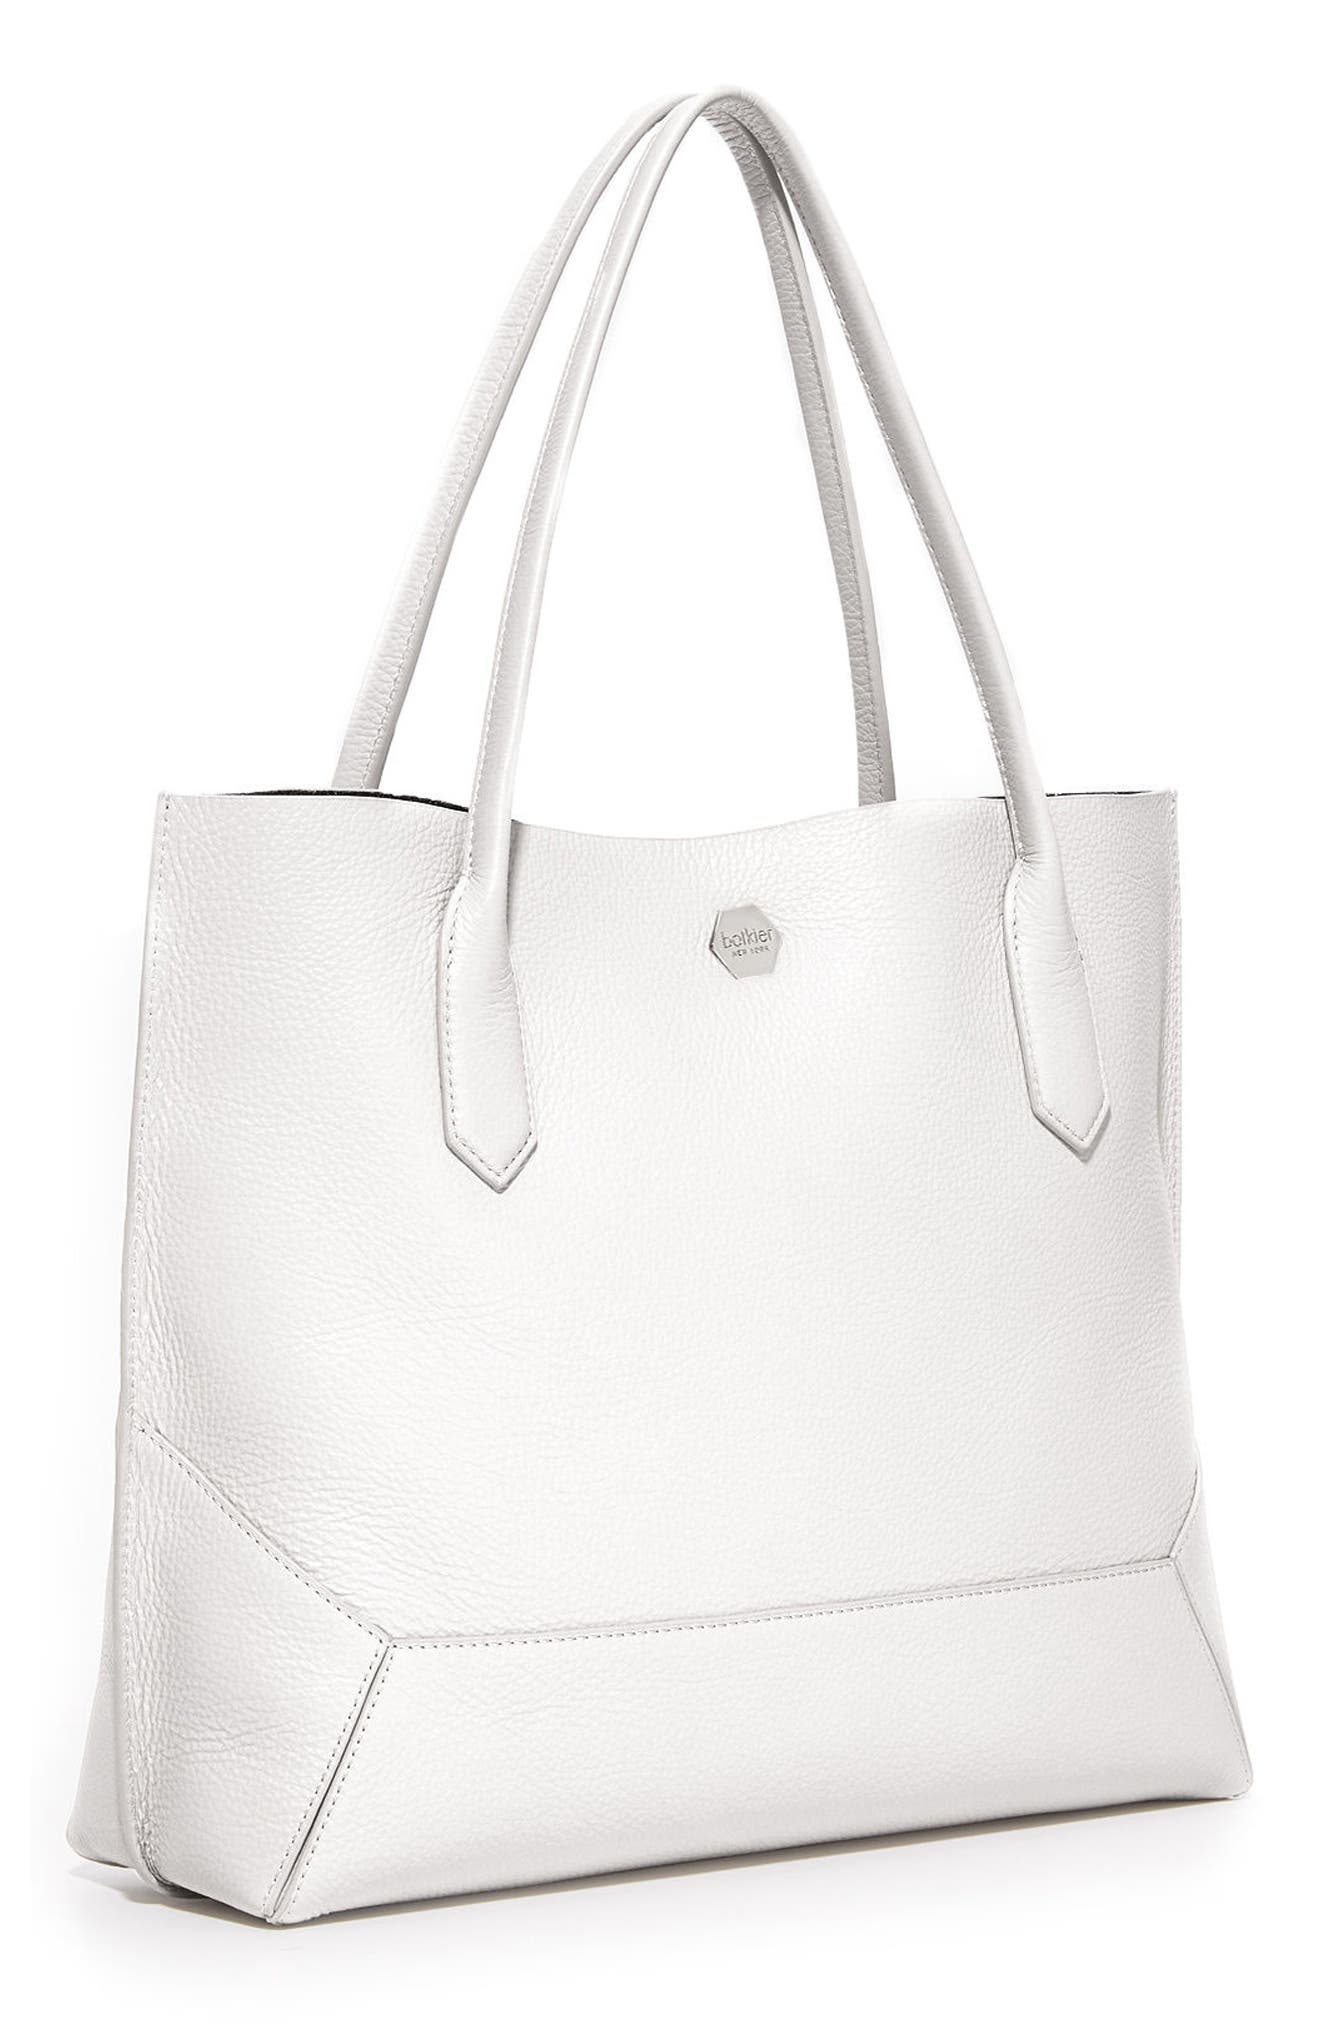 Waverly Leather Tote,                             Alternate thumbnail 2, color,                             Chalk